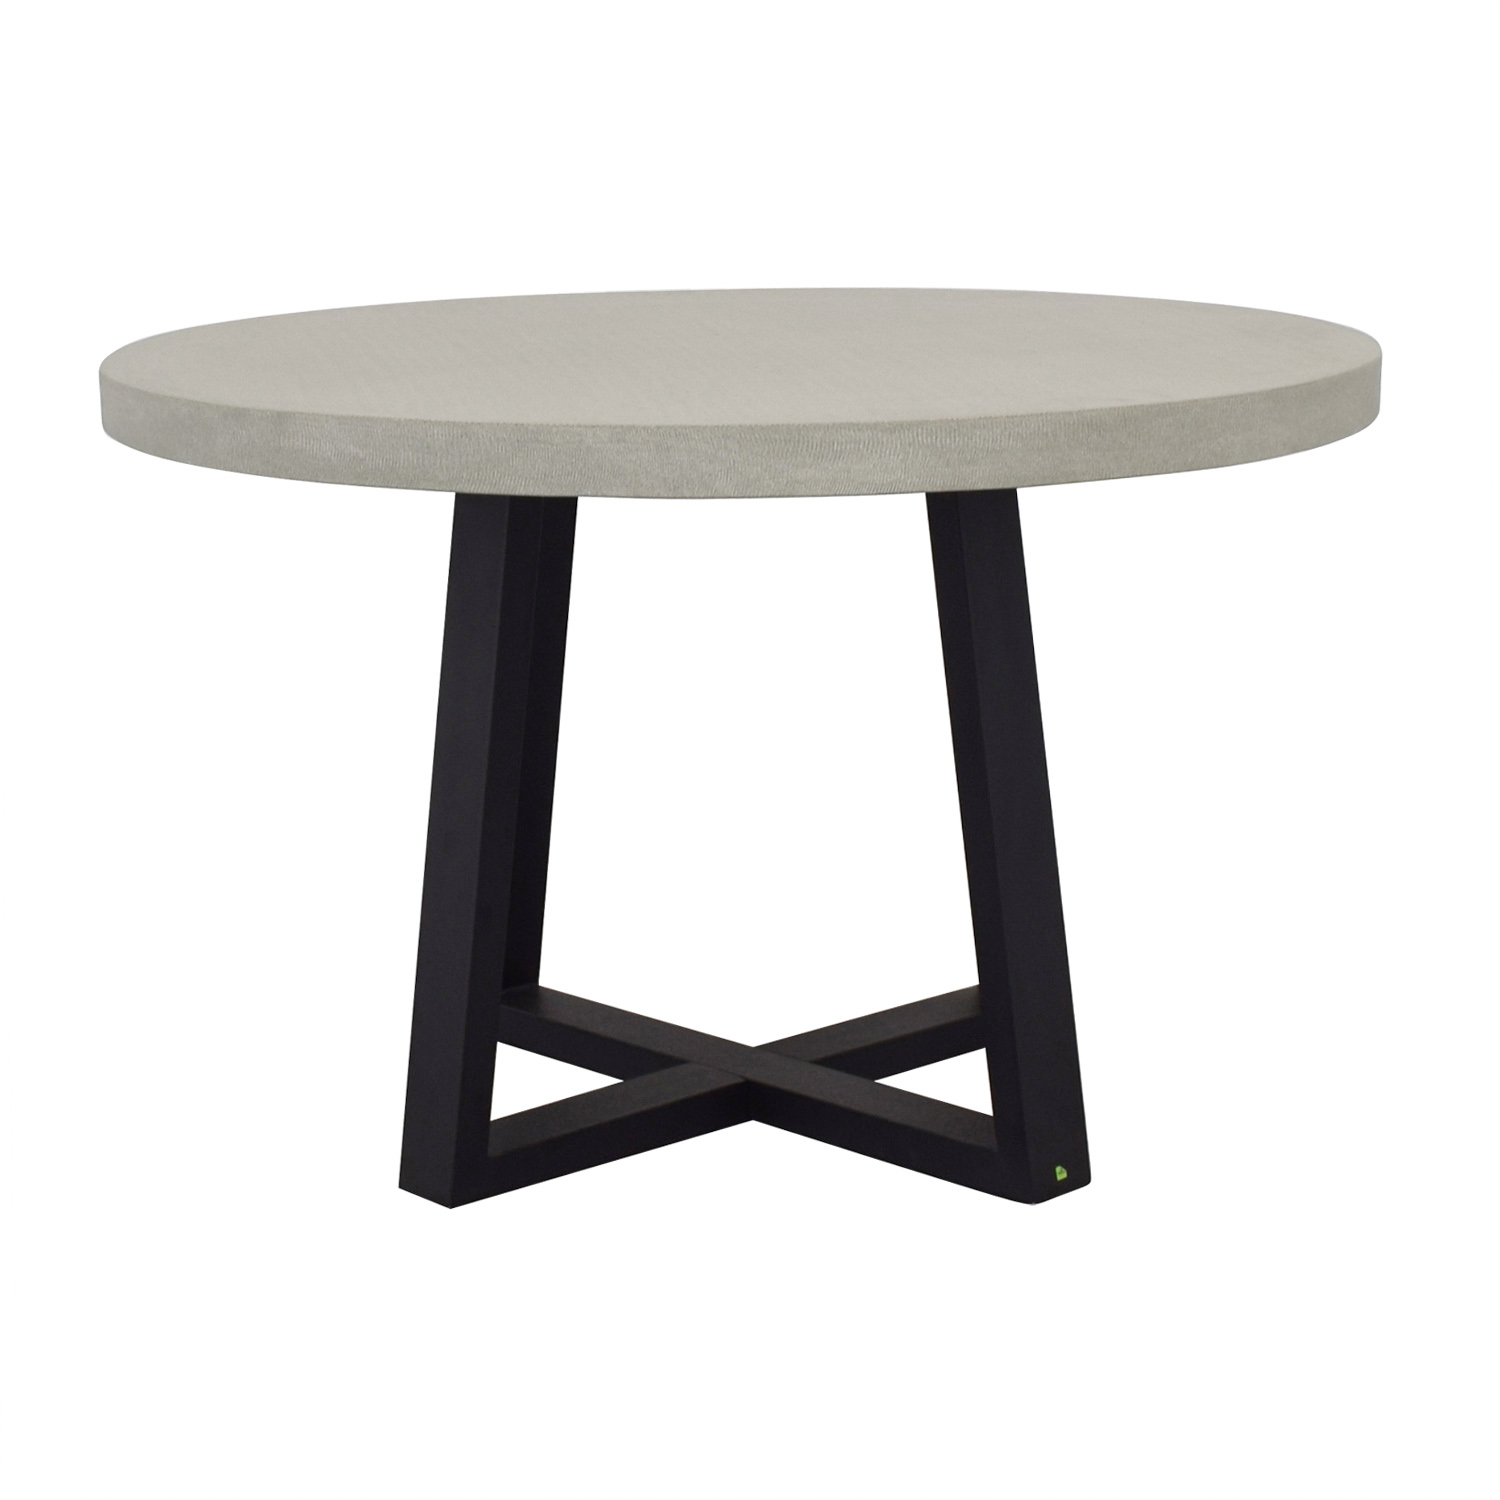 West Elm West Elm Slab Round Dining Table coupon